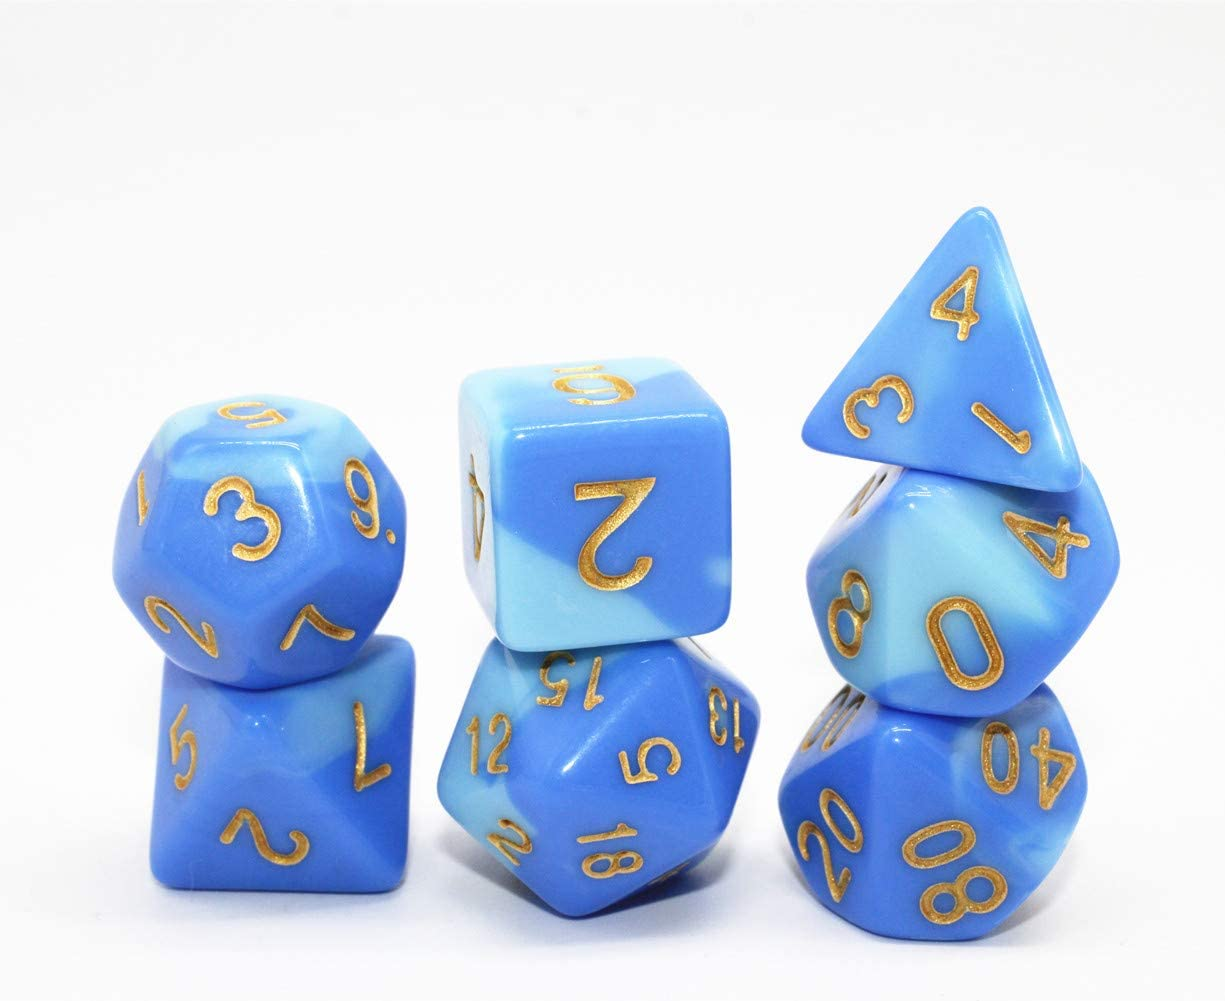 HD Dice DND RPG Marble Dice Set Fit Dungeons and Dragons Red /& White D/&D Pathfinder Role Playing Games Polyhedral Dice D20 D12 D10 D8 D6 D4 /%D